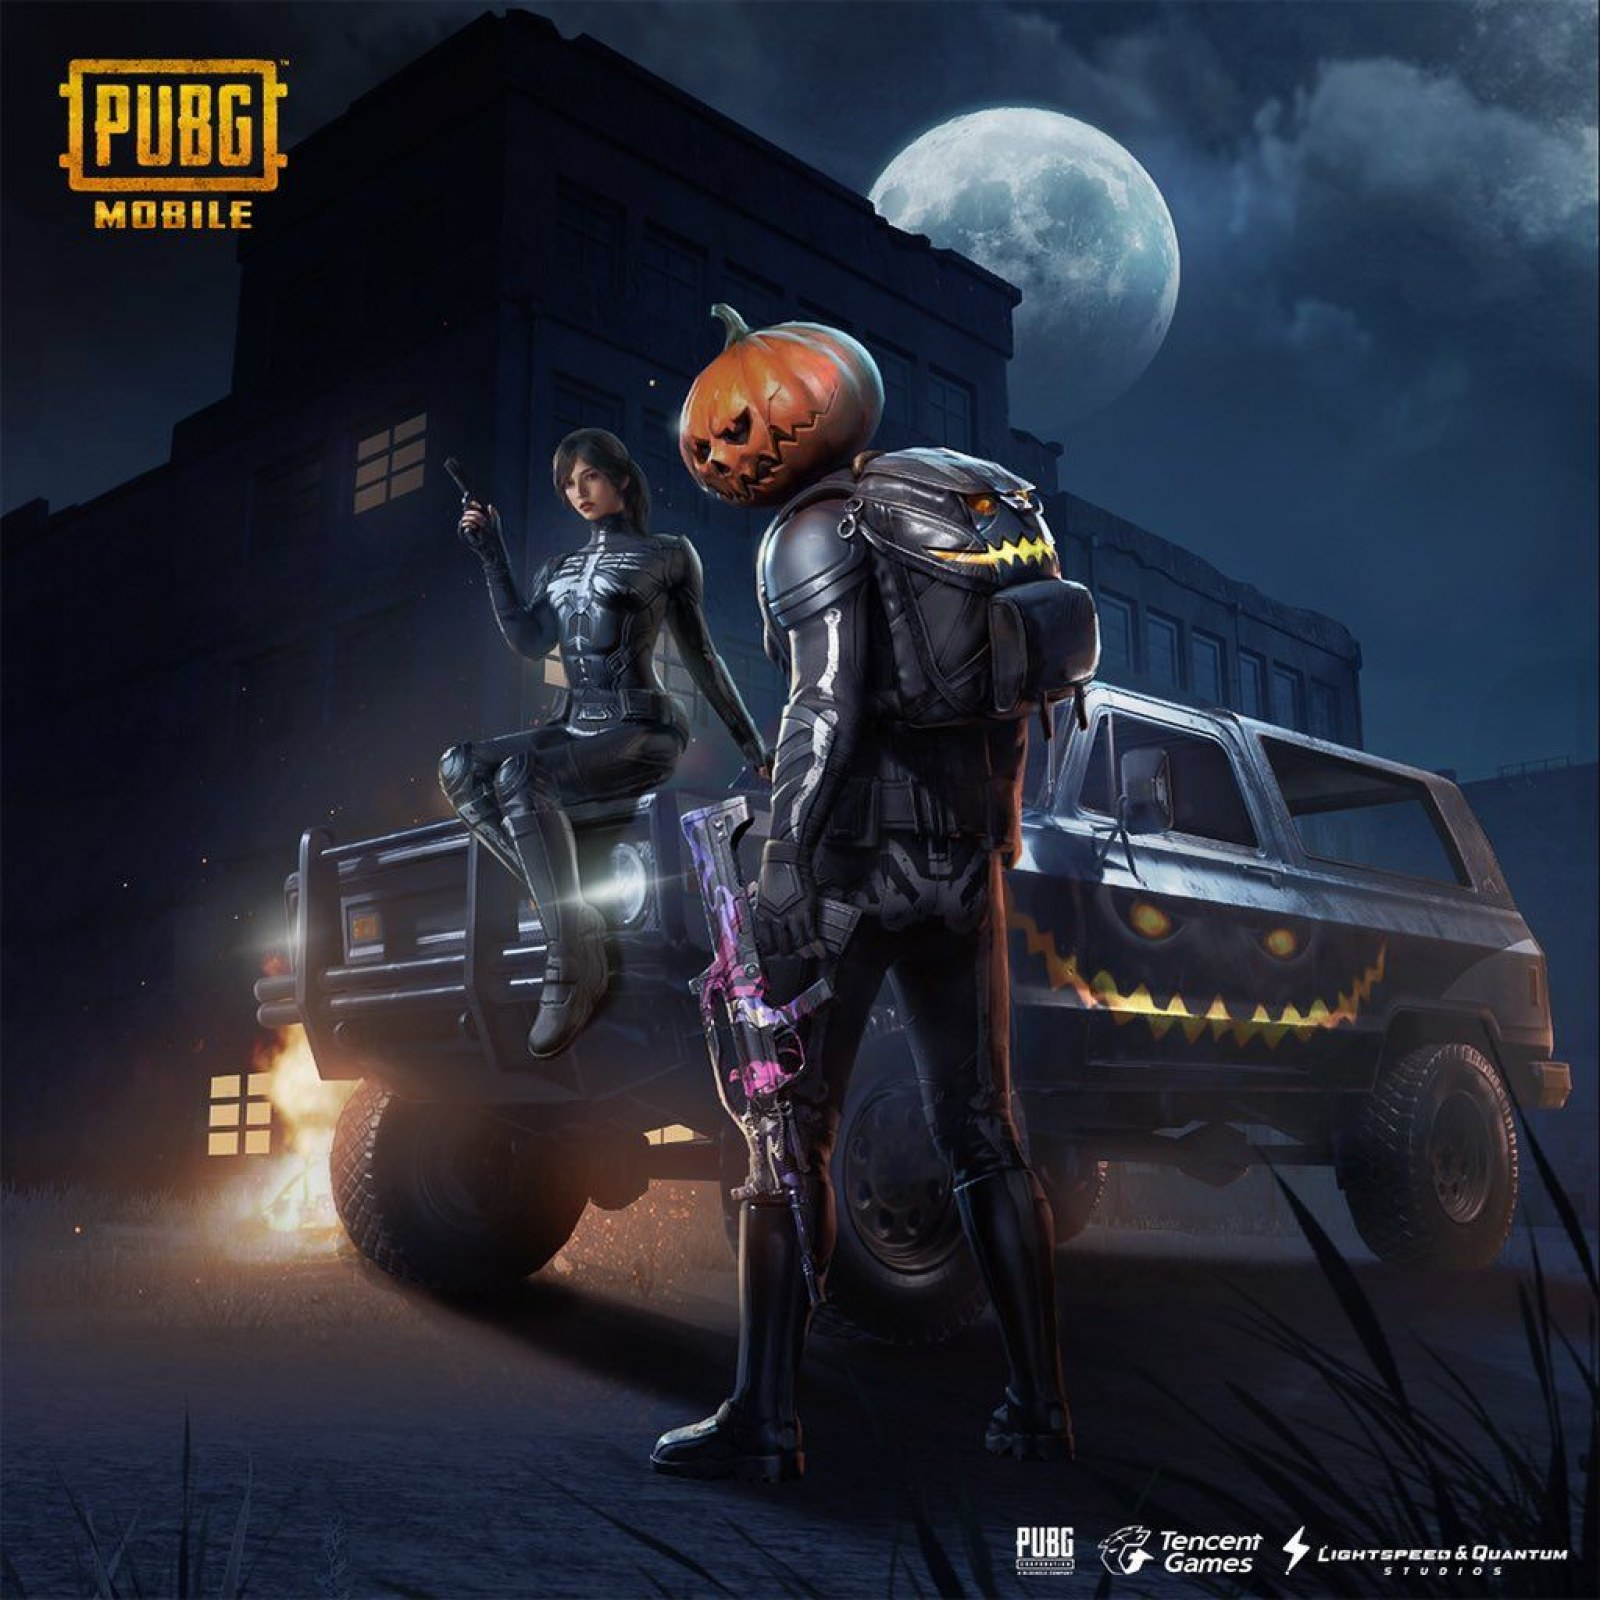 PUBG Mobile' Update 0 9 0 Adds Halloween Skins & Night Mode - Patch